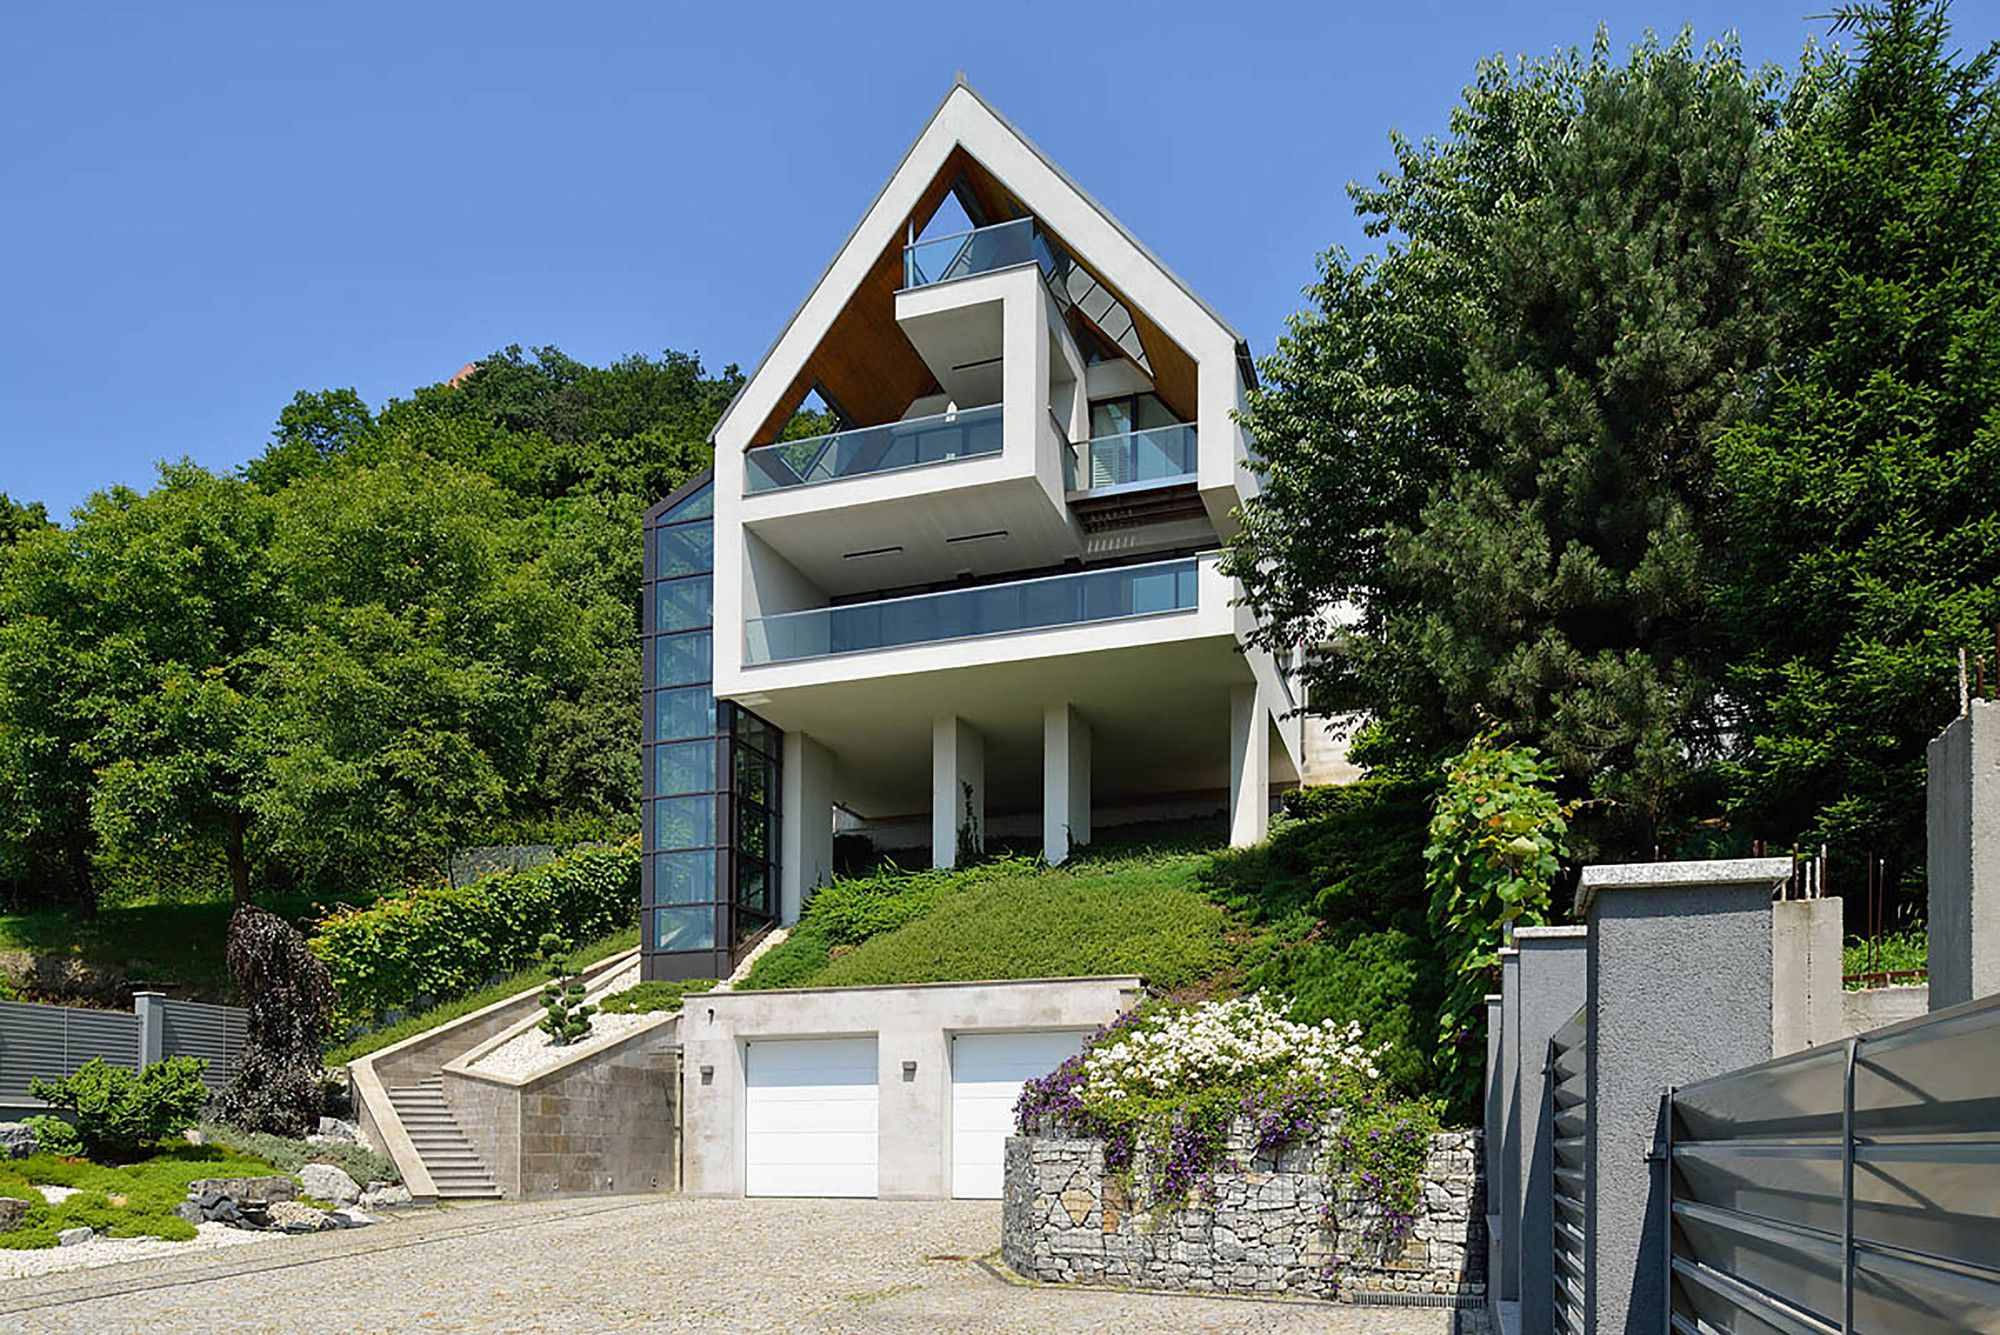 A house on a slope connects to its surroundings through a for Slope home design